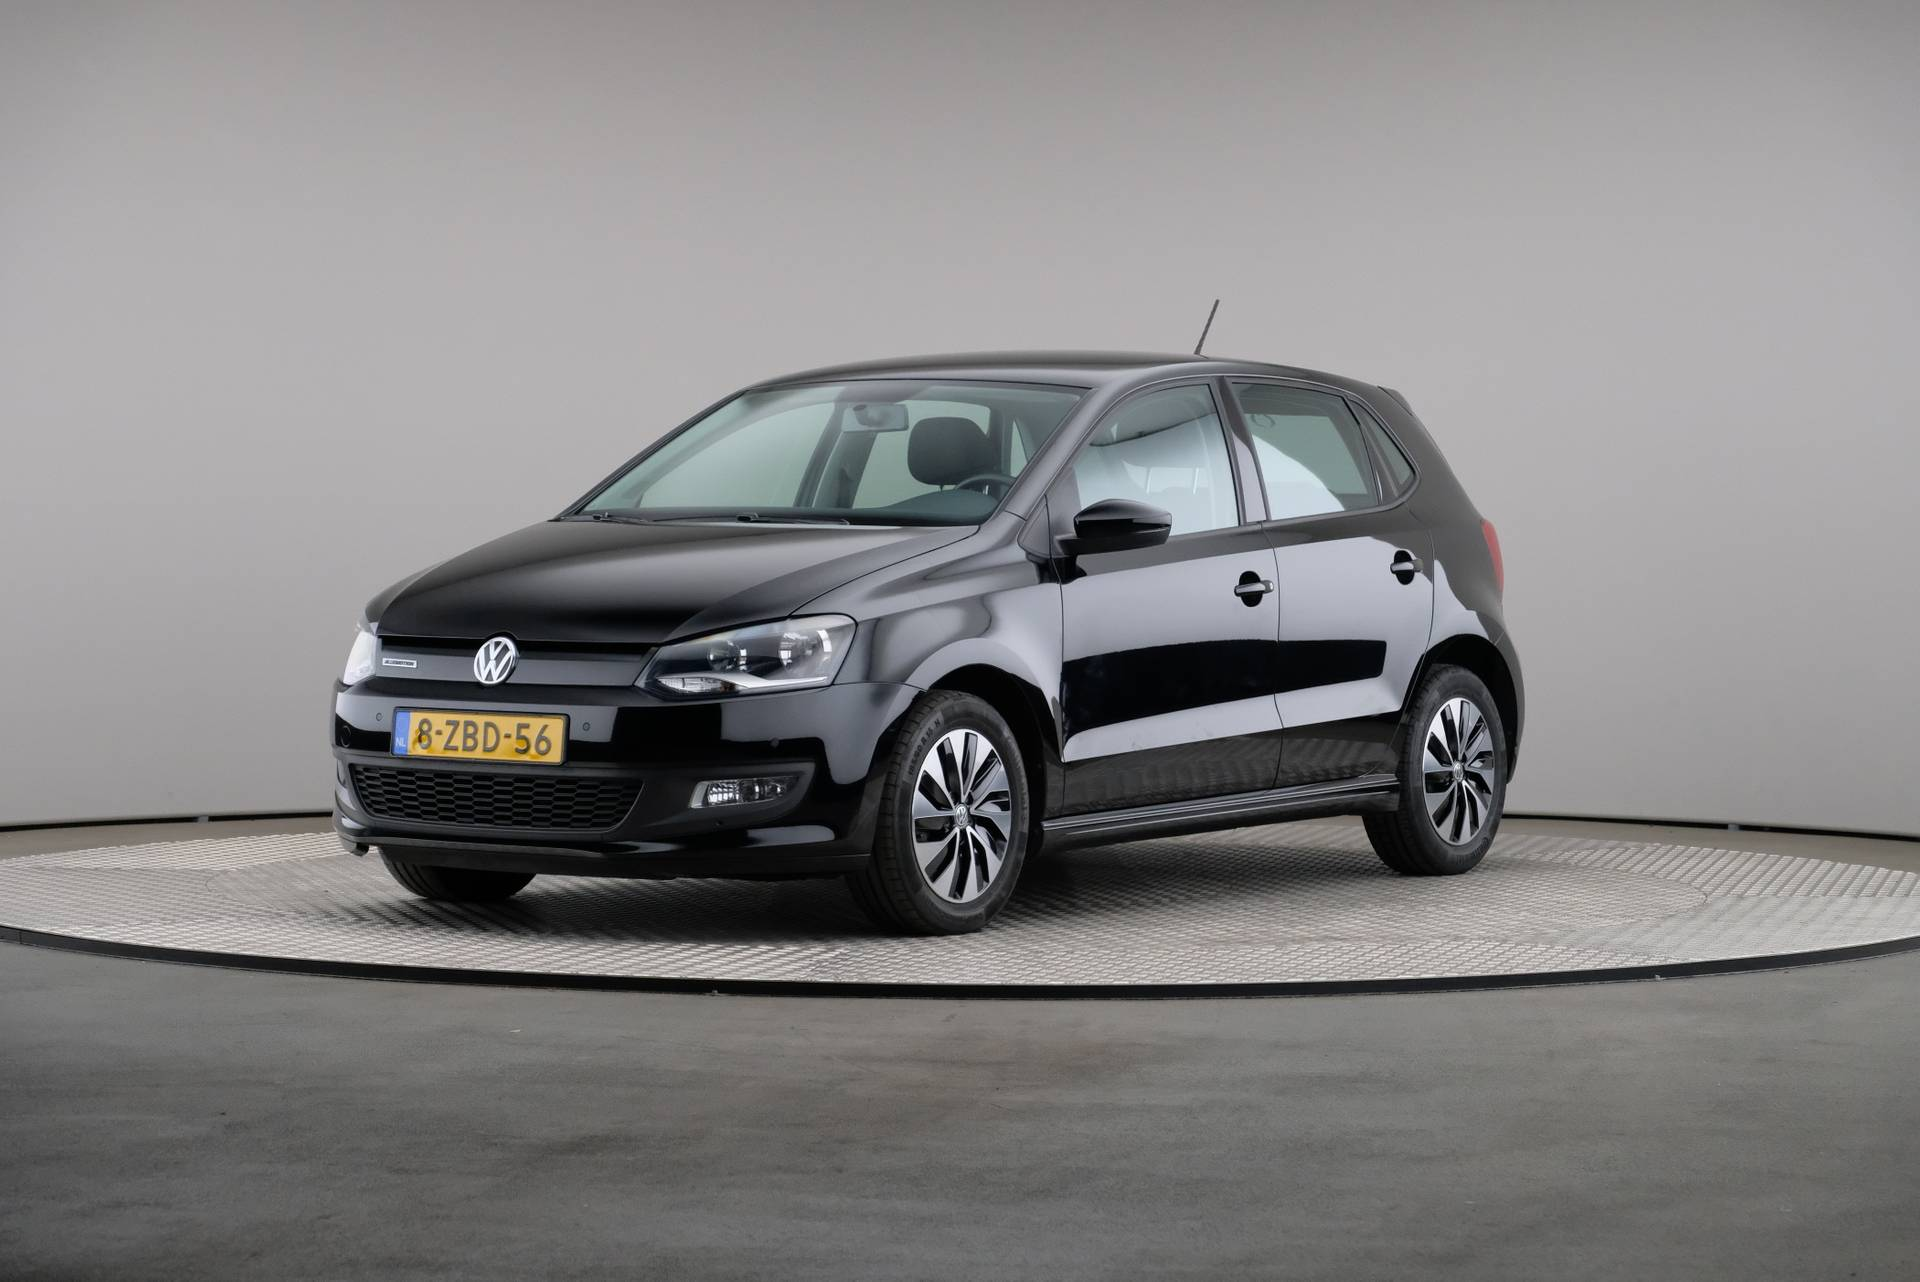 Volkswagen Polo 1.4 TDI BlueMotion, Executive, Airco, Navigatie, 360-image0